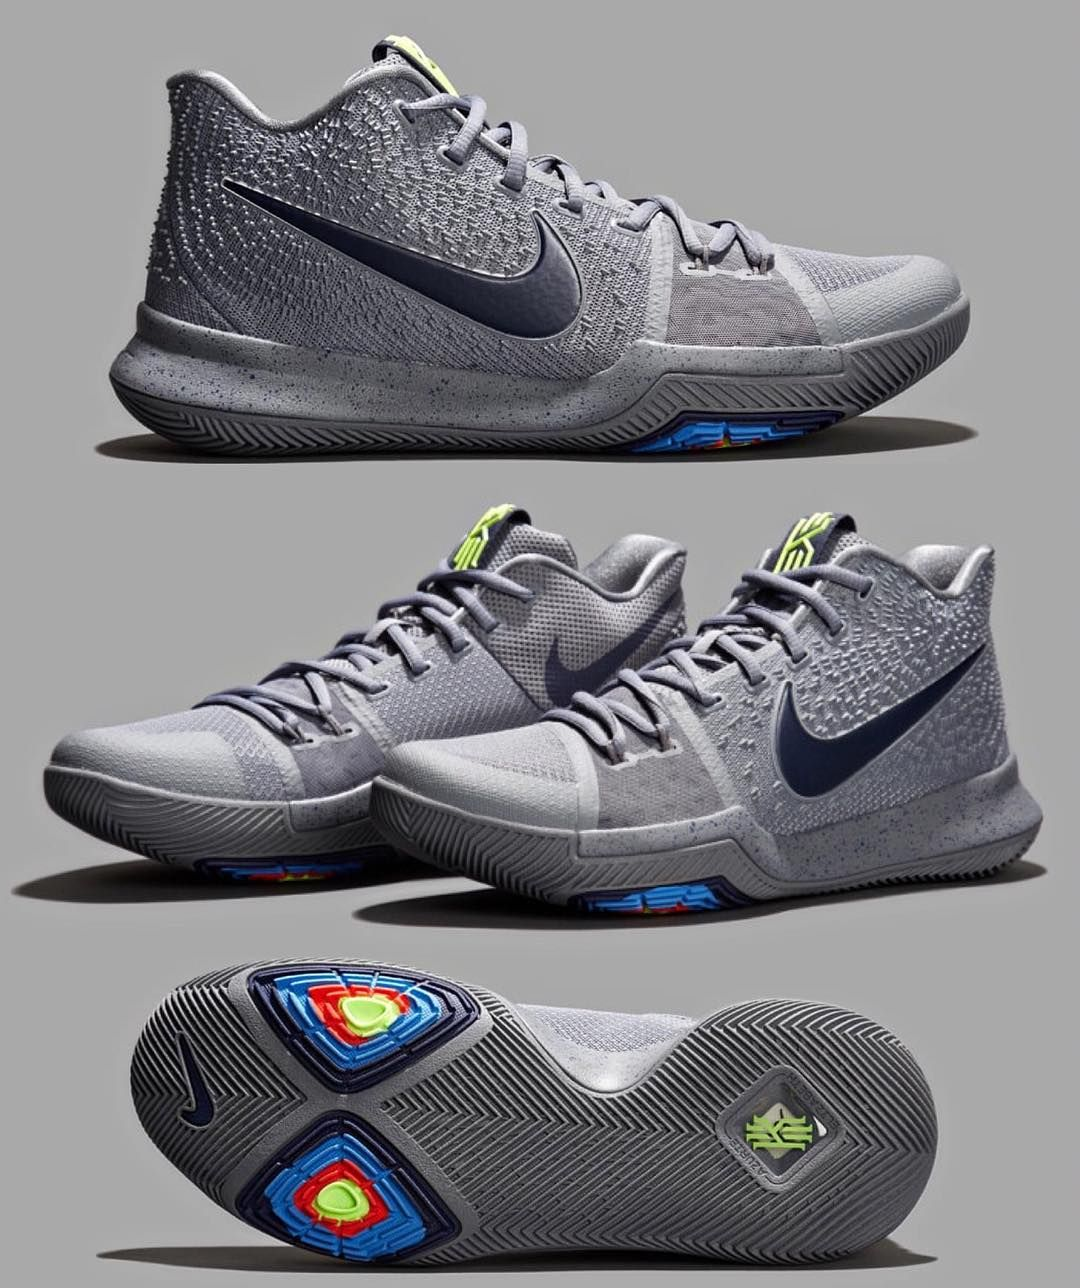 12087c8fbc7b Cop or Drop  👟 Nike Kyrie 3